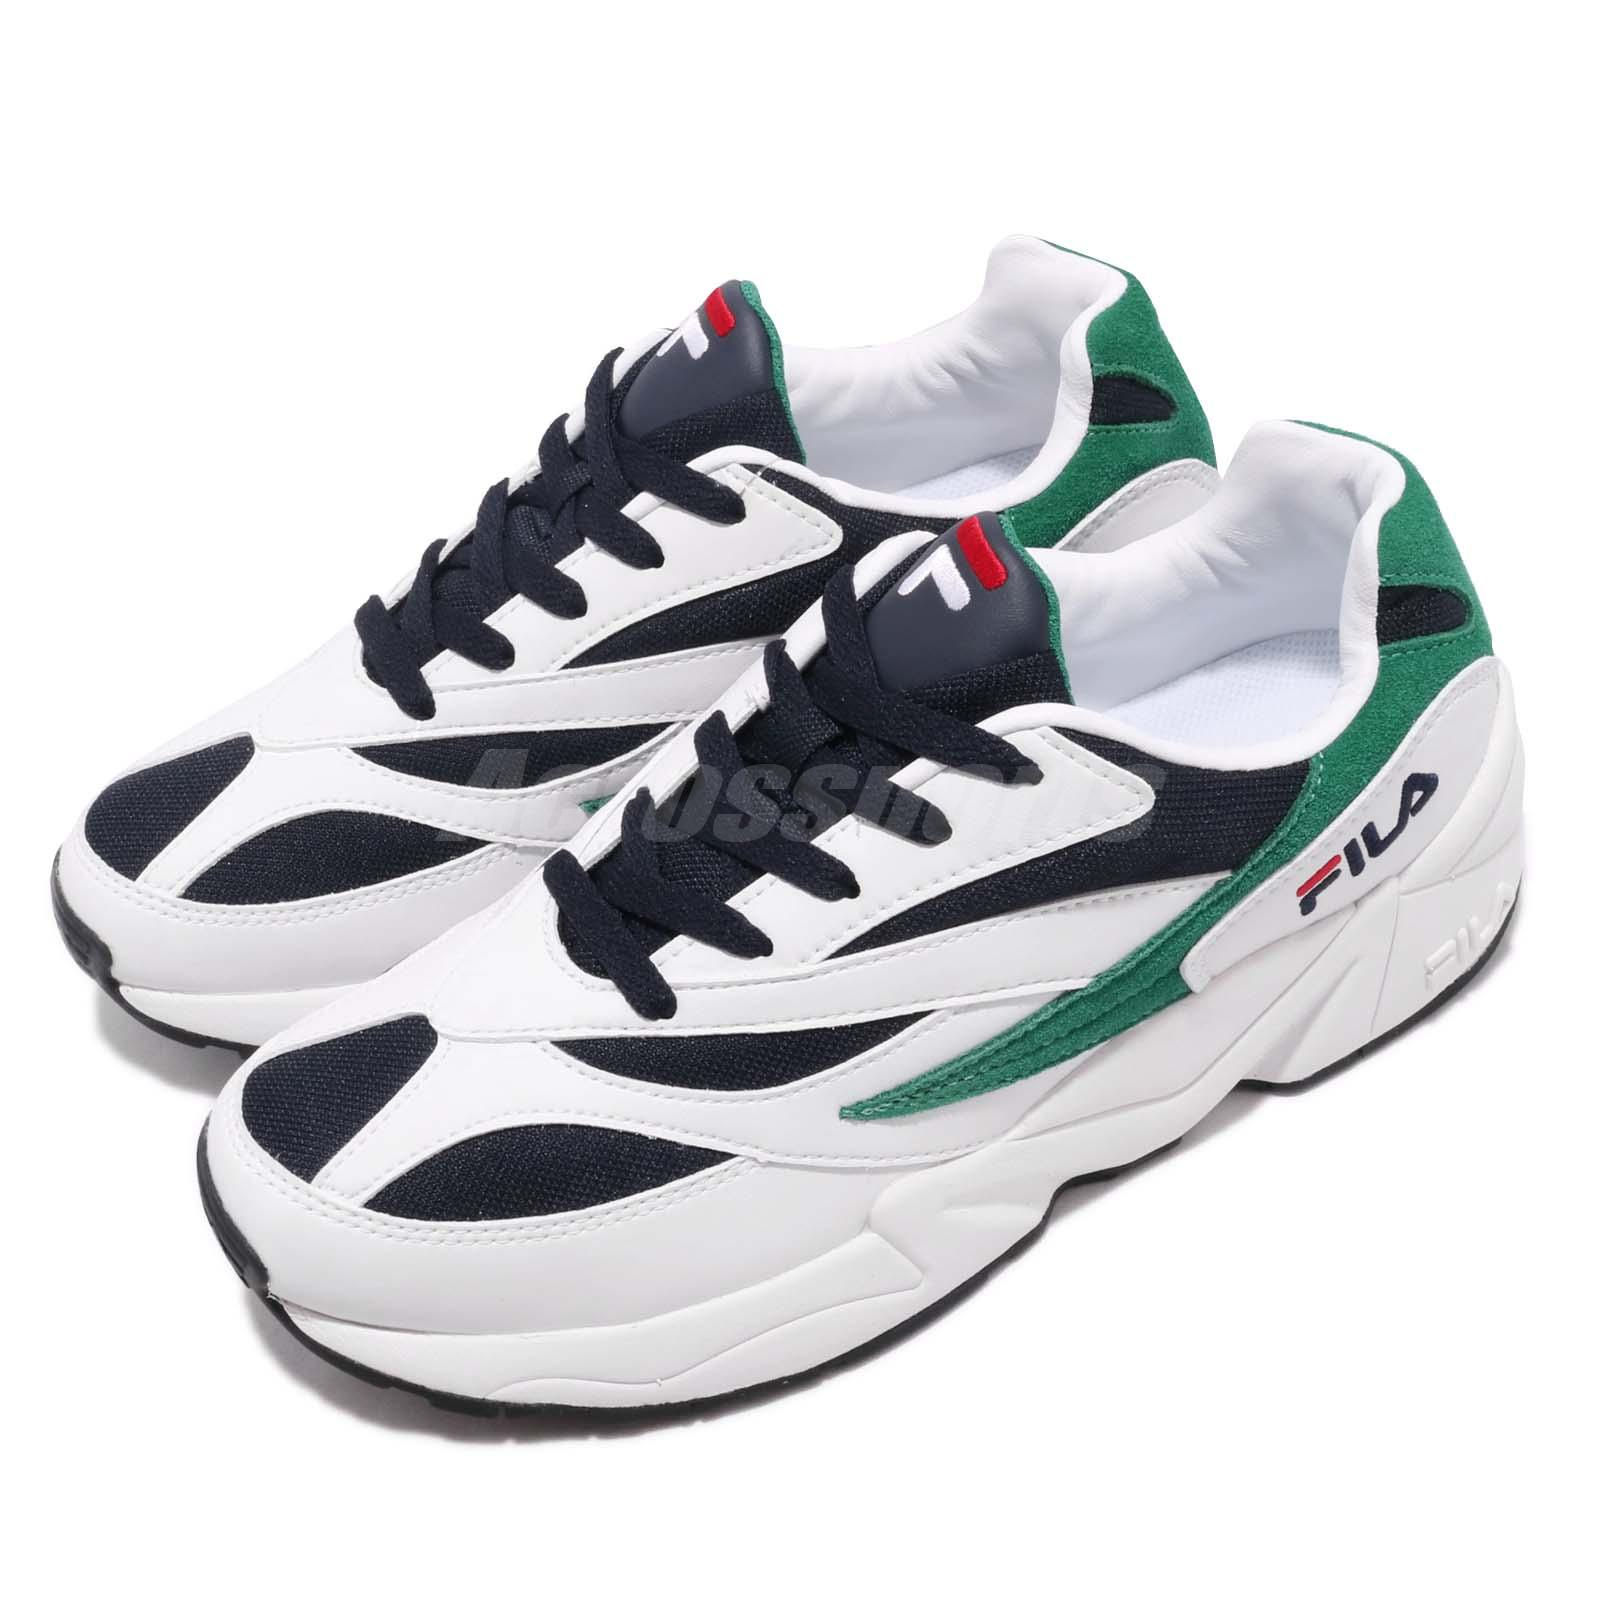 Details about Fila Venom 94 White Navy Green Men Women Running Lifestyle  Daddy Shoes Sneakers